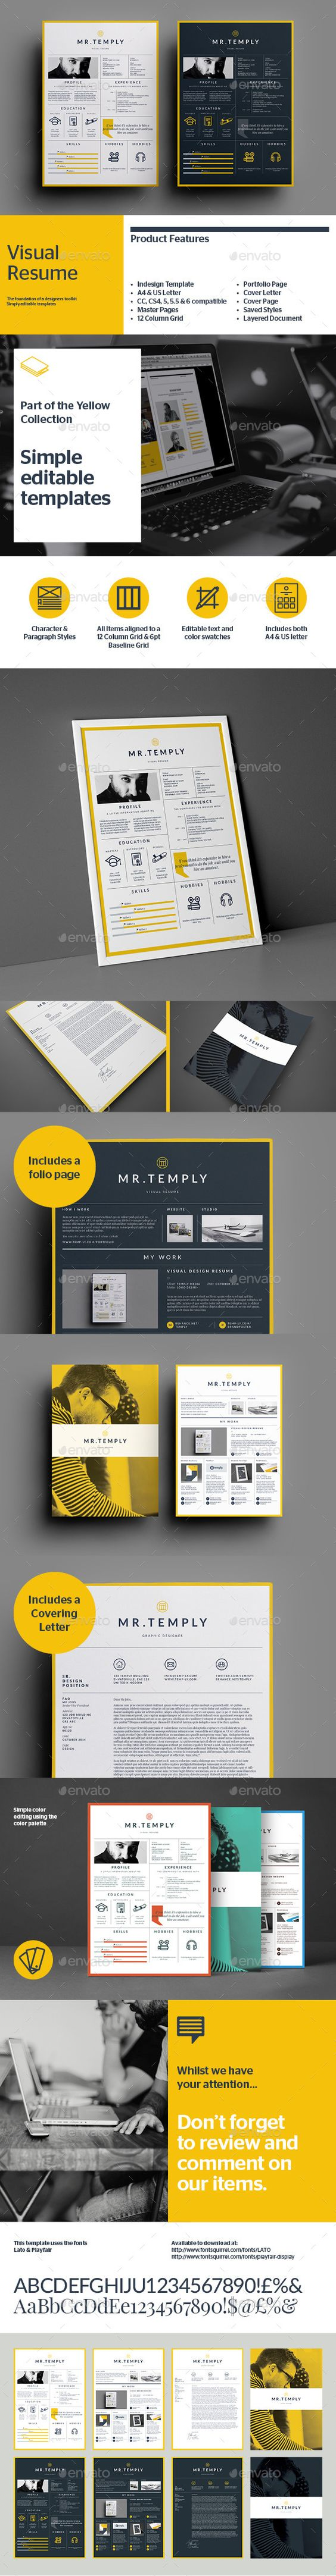 the visual resume template is an indesign brochure